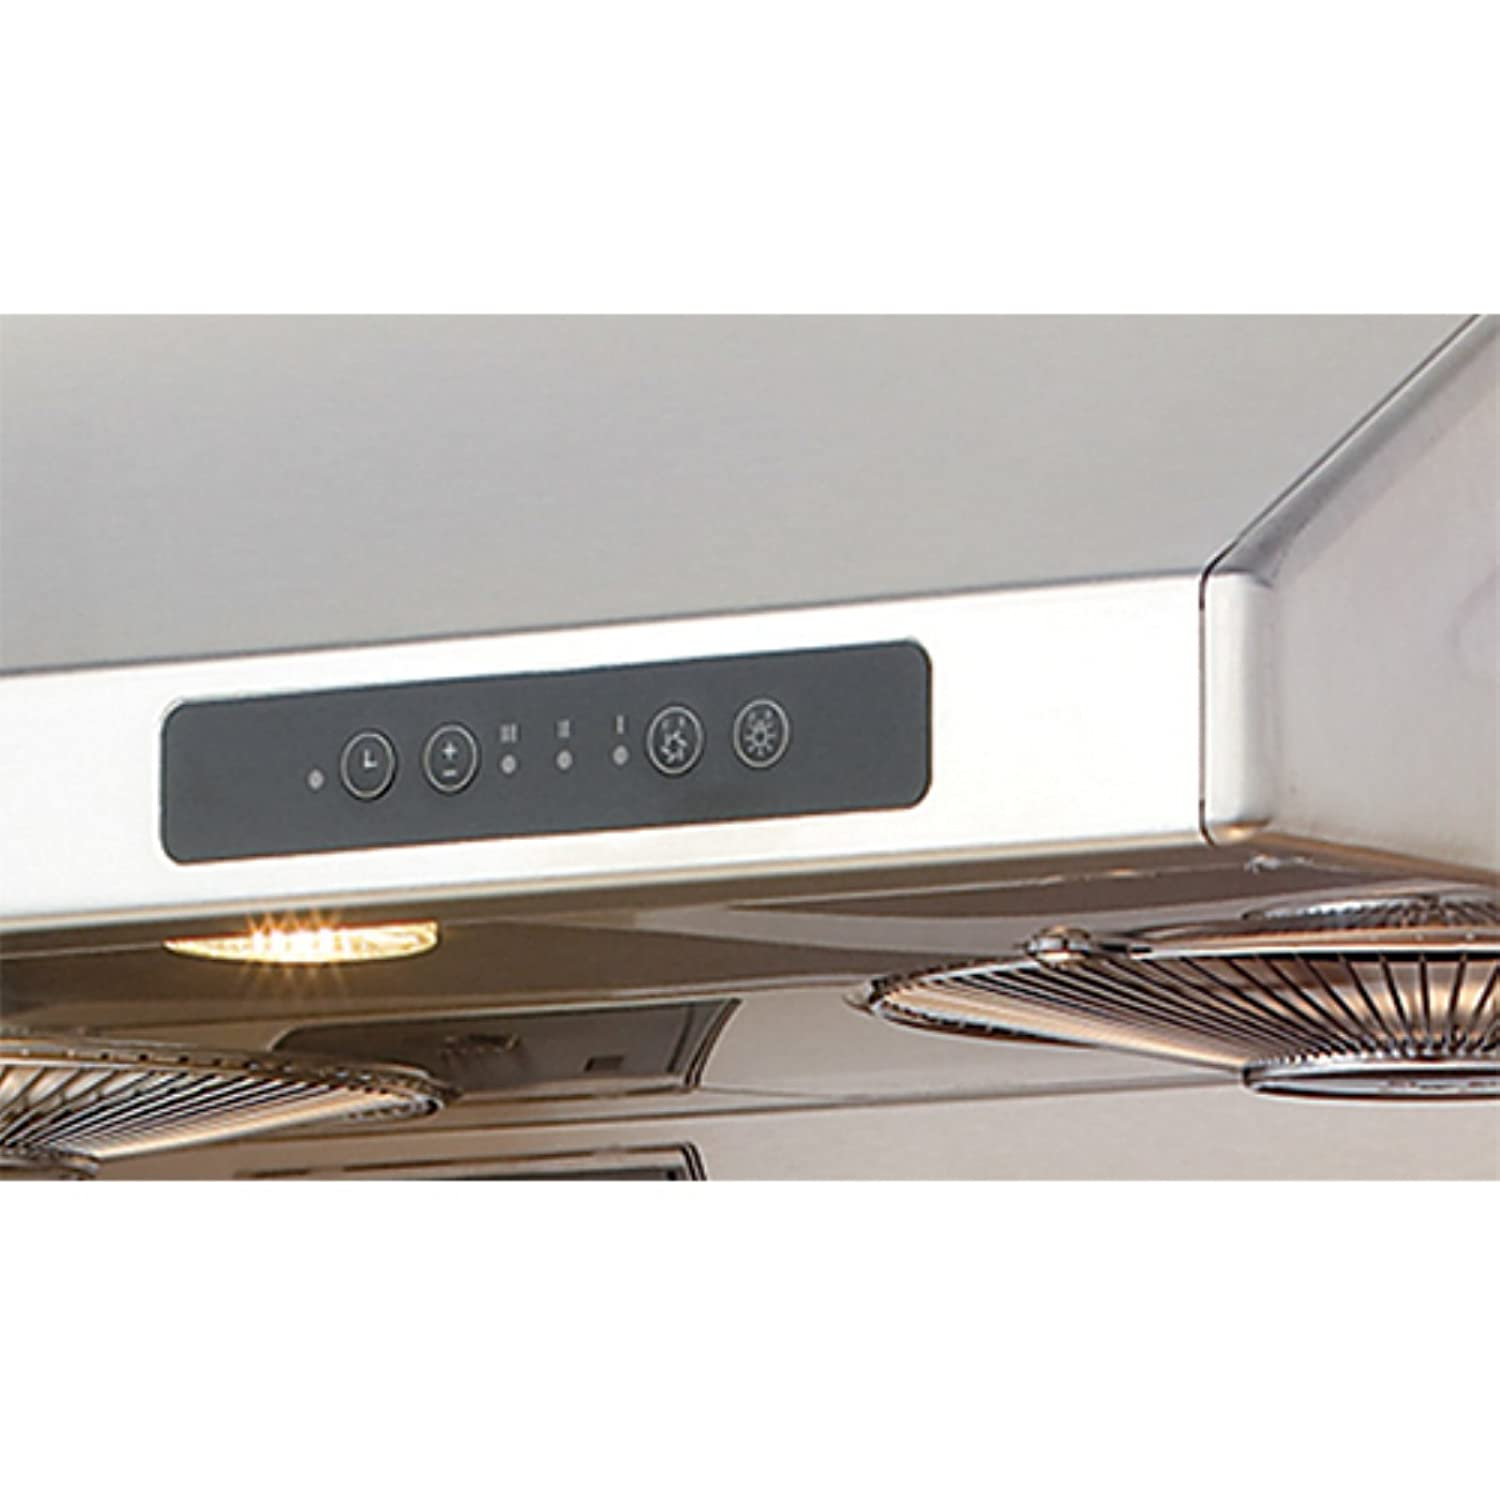 delightful Zephyr Hurricane Ak2500 Kitchen Hood #1: Amazon.com: Zephyr 30W in. Hurricane Under Cabinet Range Hood: Appliances